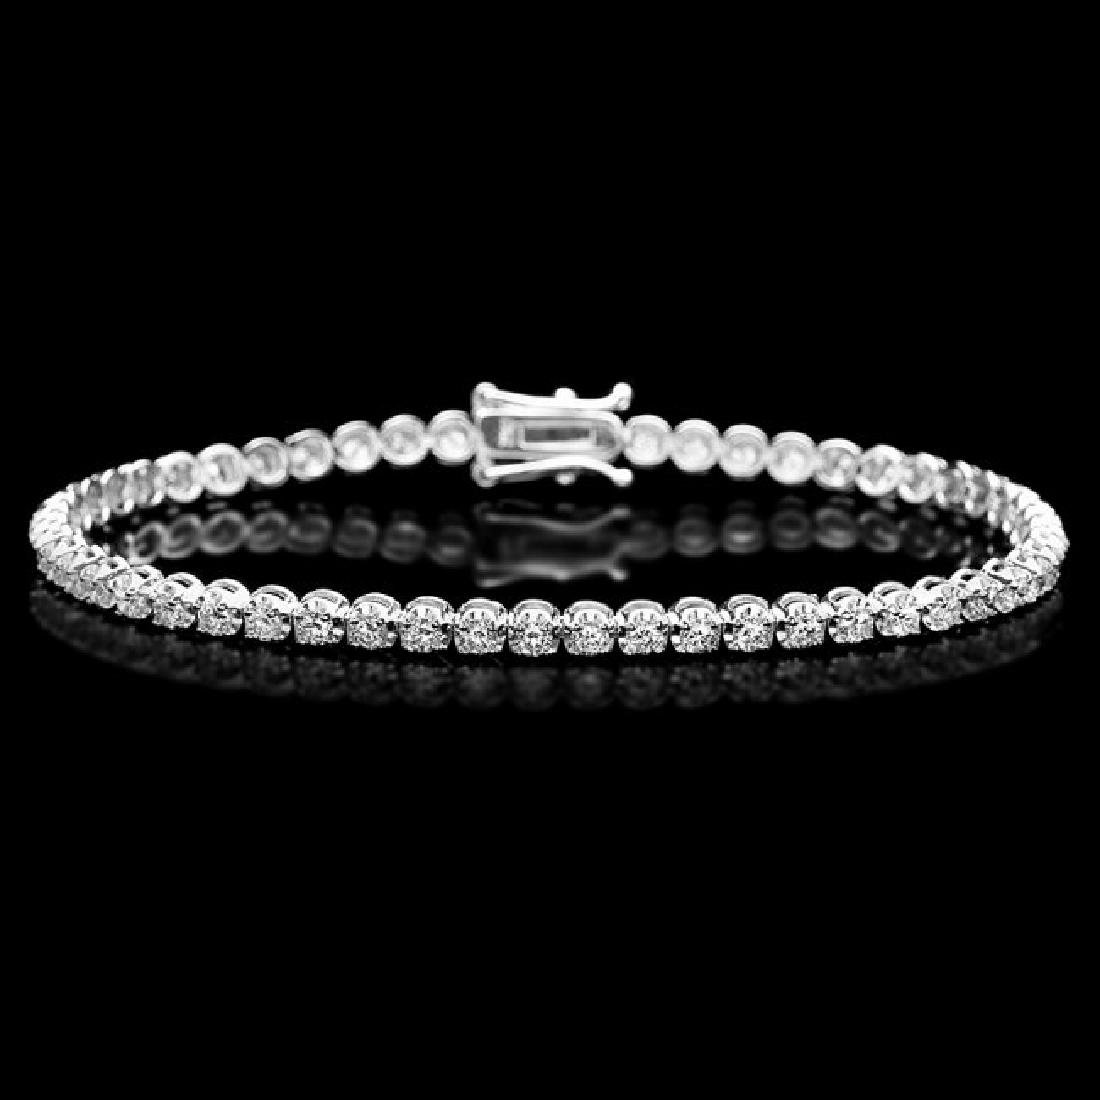 18k White Gold 2.80ct Diamond Bracelet